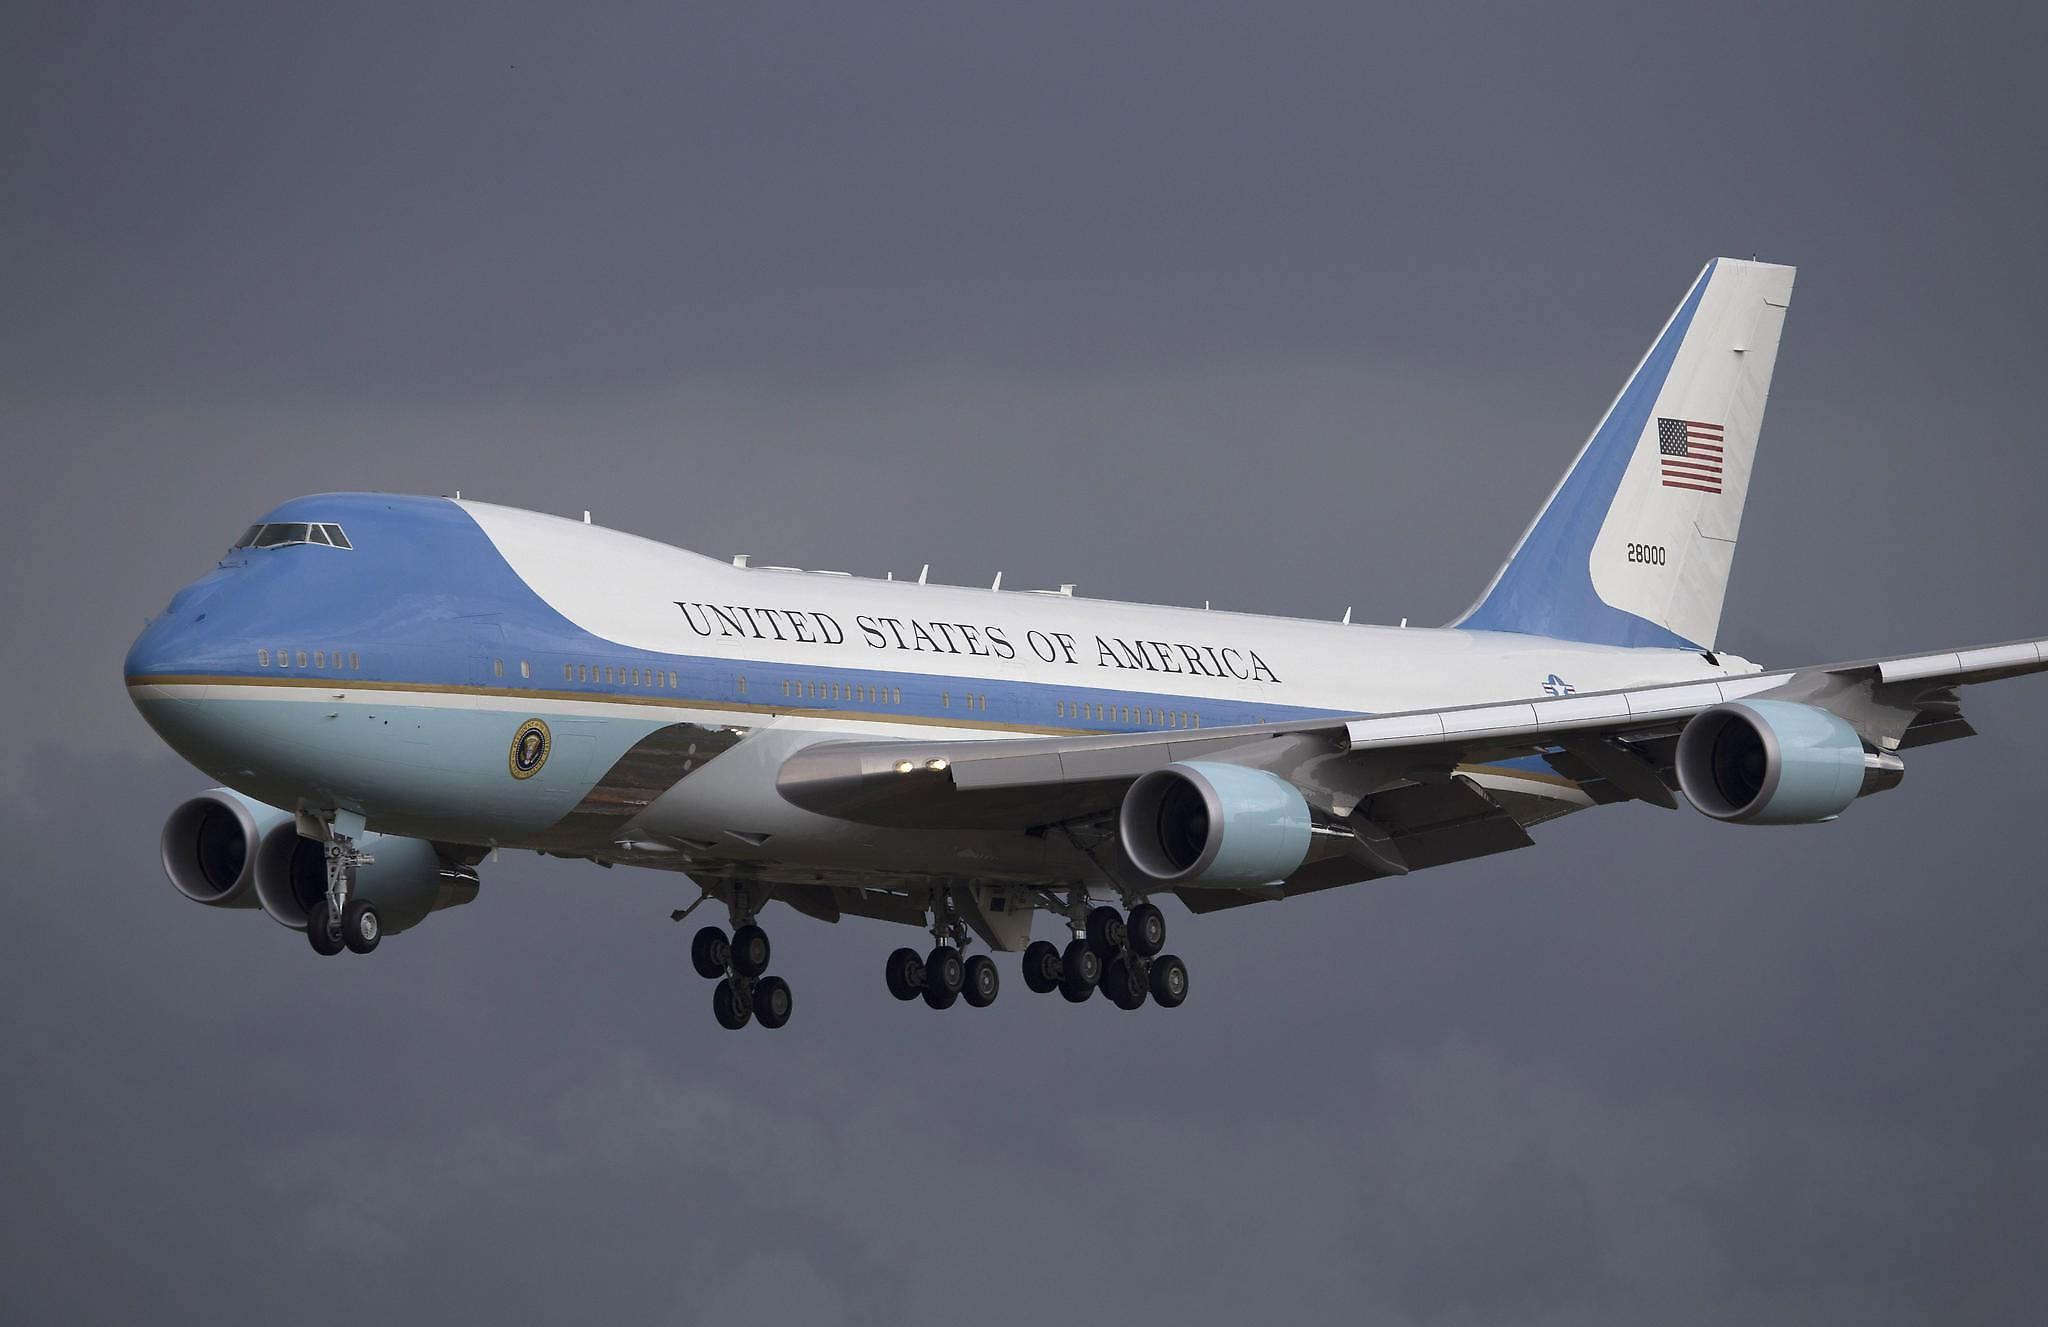 Trump has blasted the cost of replacing Air Force One.